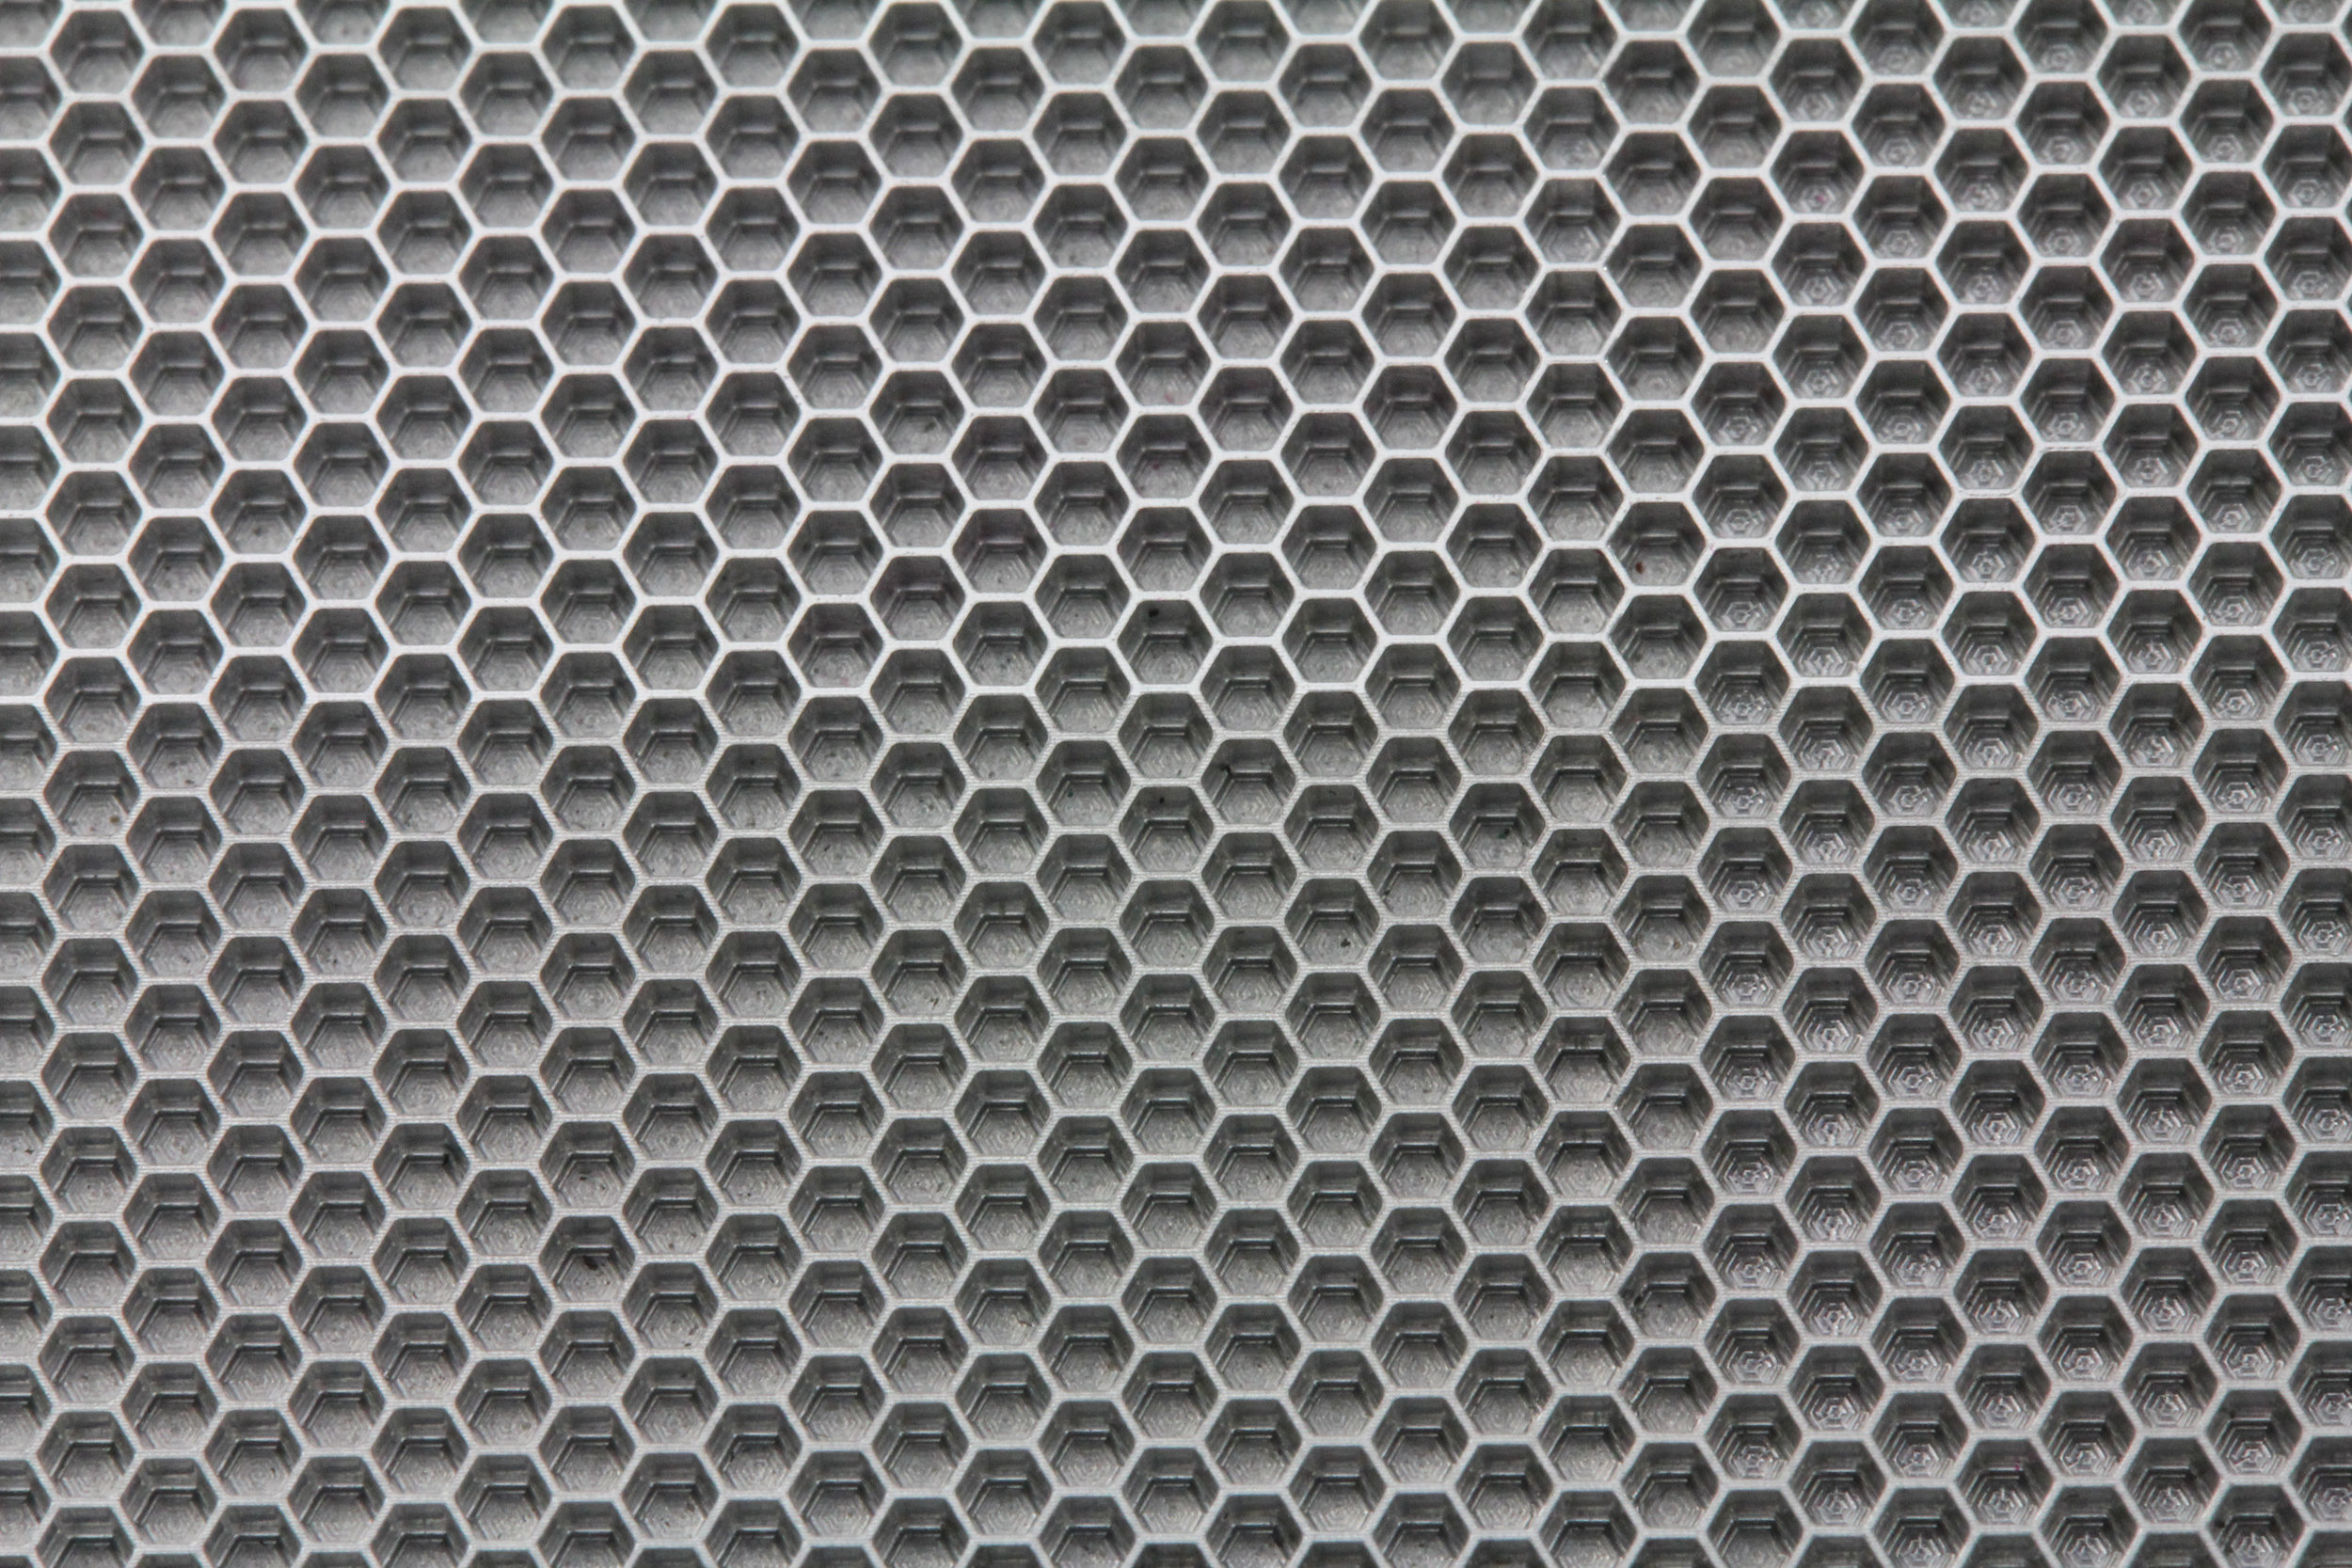 Micro honeycomb Manufacturing of precise and complicated shapes.